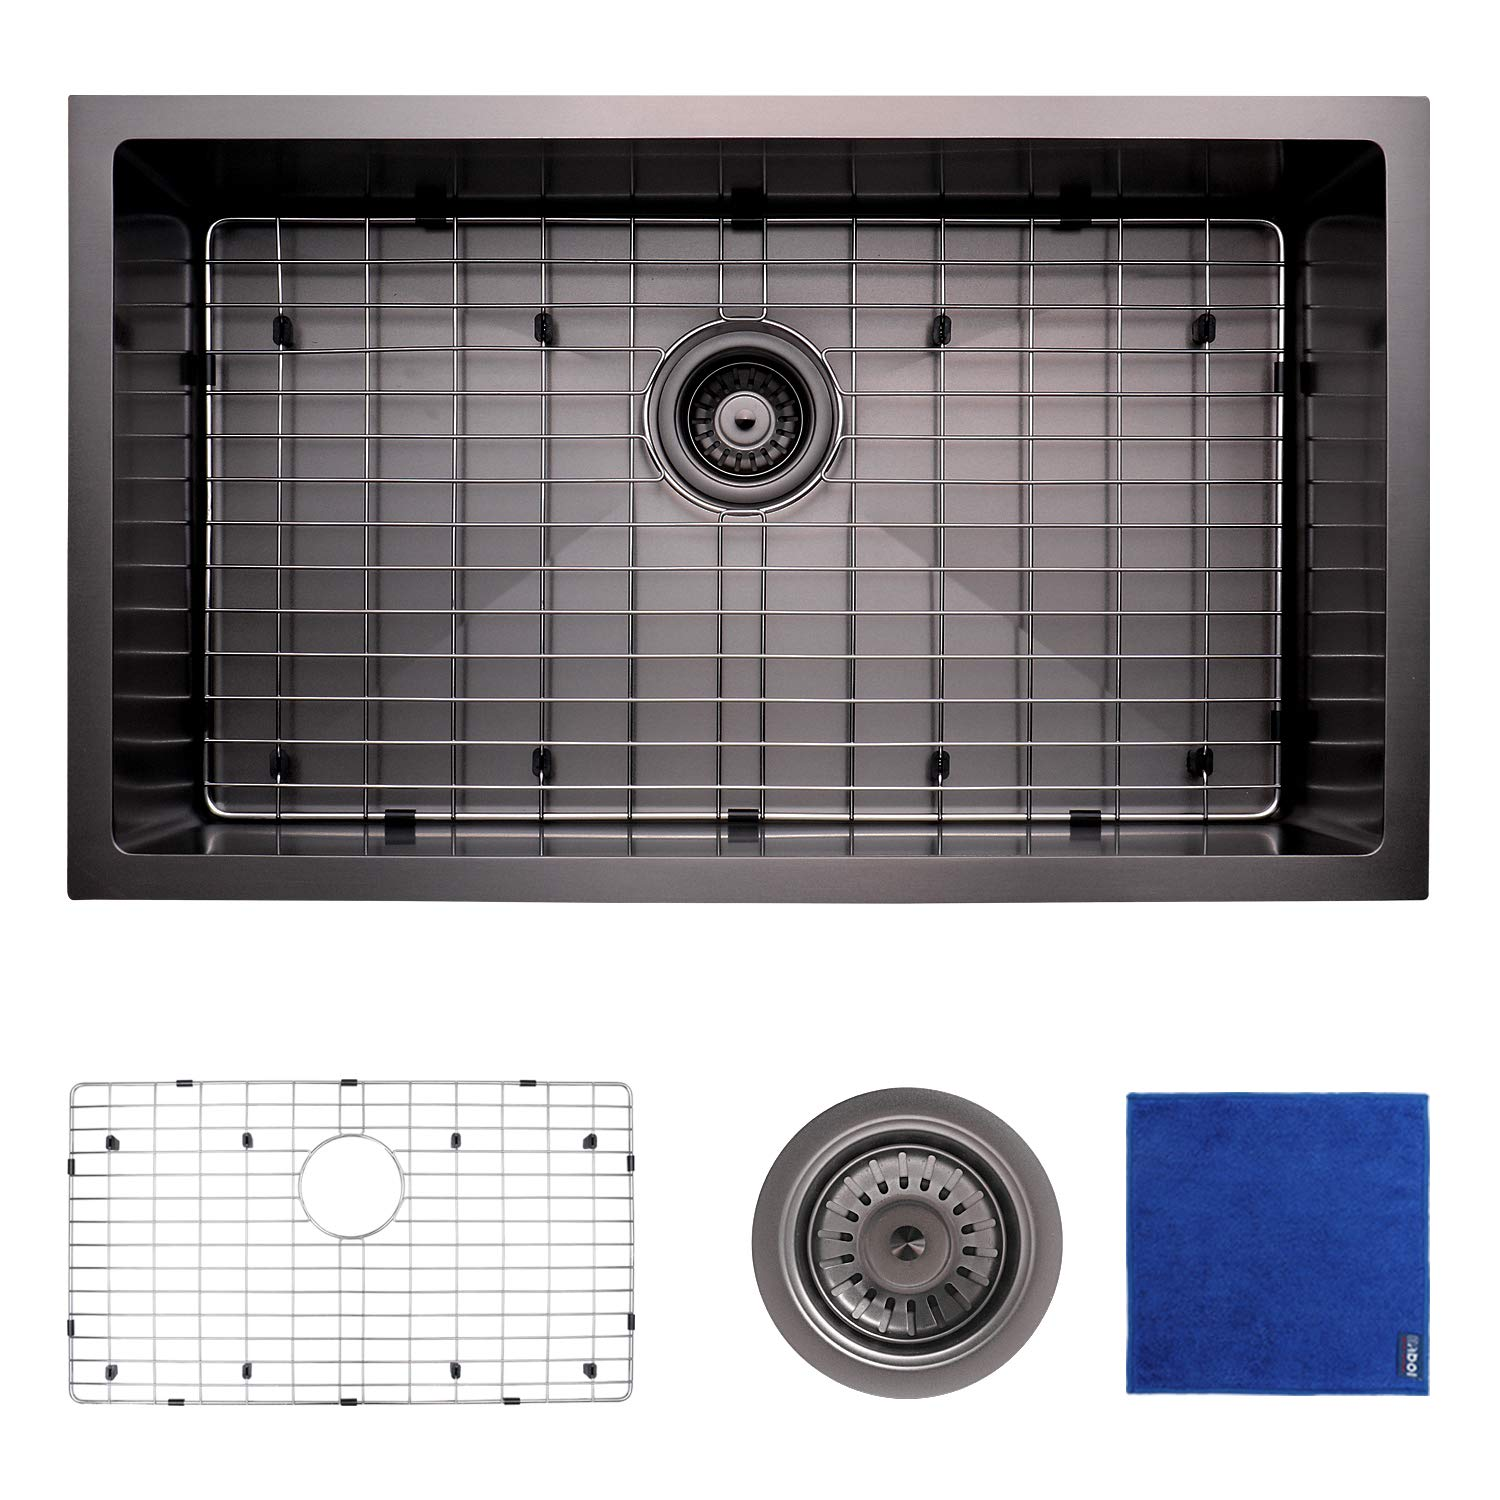 Enbol SDC-3018-B, 30 Inch Extremely Durable Black Color Nano Titanium Plating Fully Coating Undermount Single Bowl Stainless Steel Kitchen Sink, R 10 Easy Clean, With Bottom Grid and Strainer